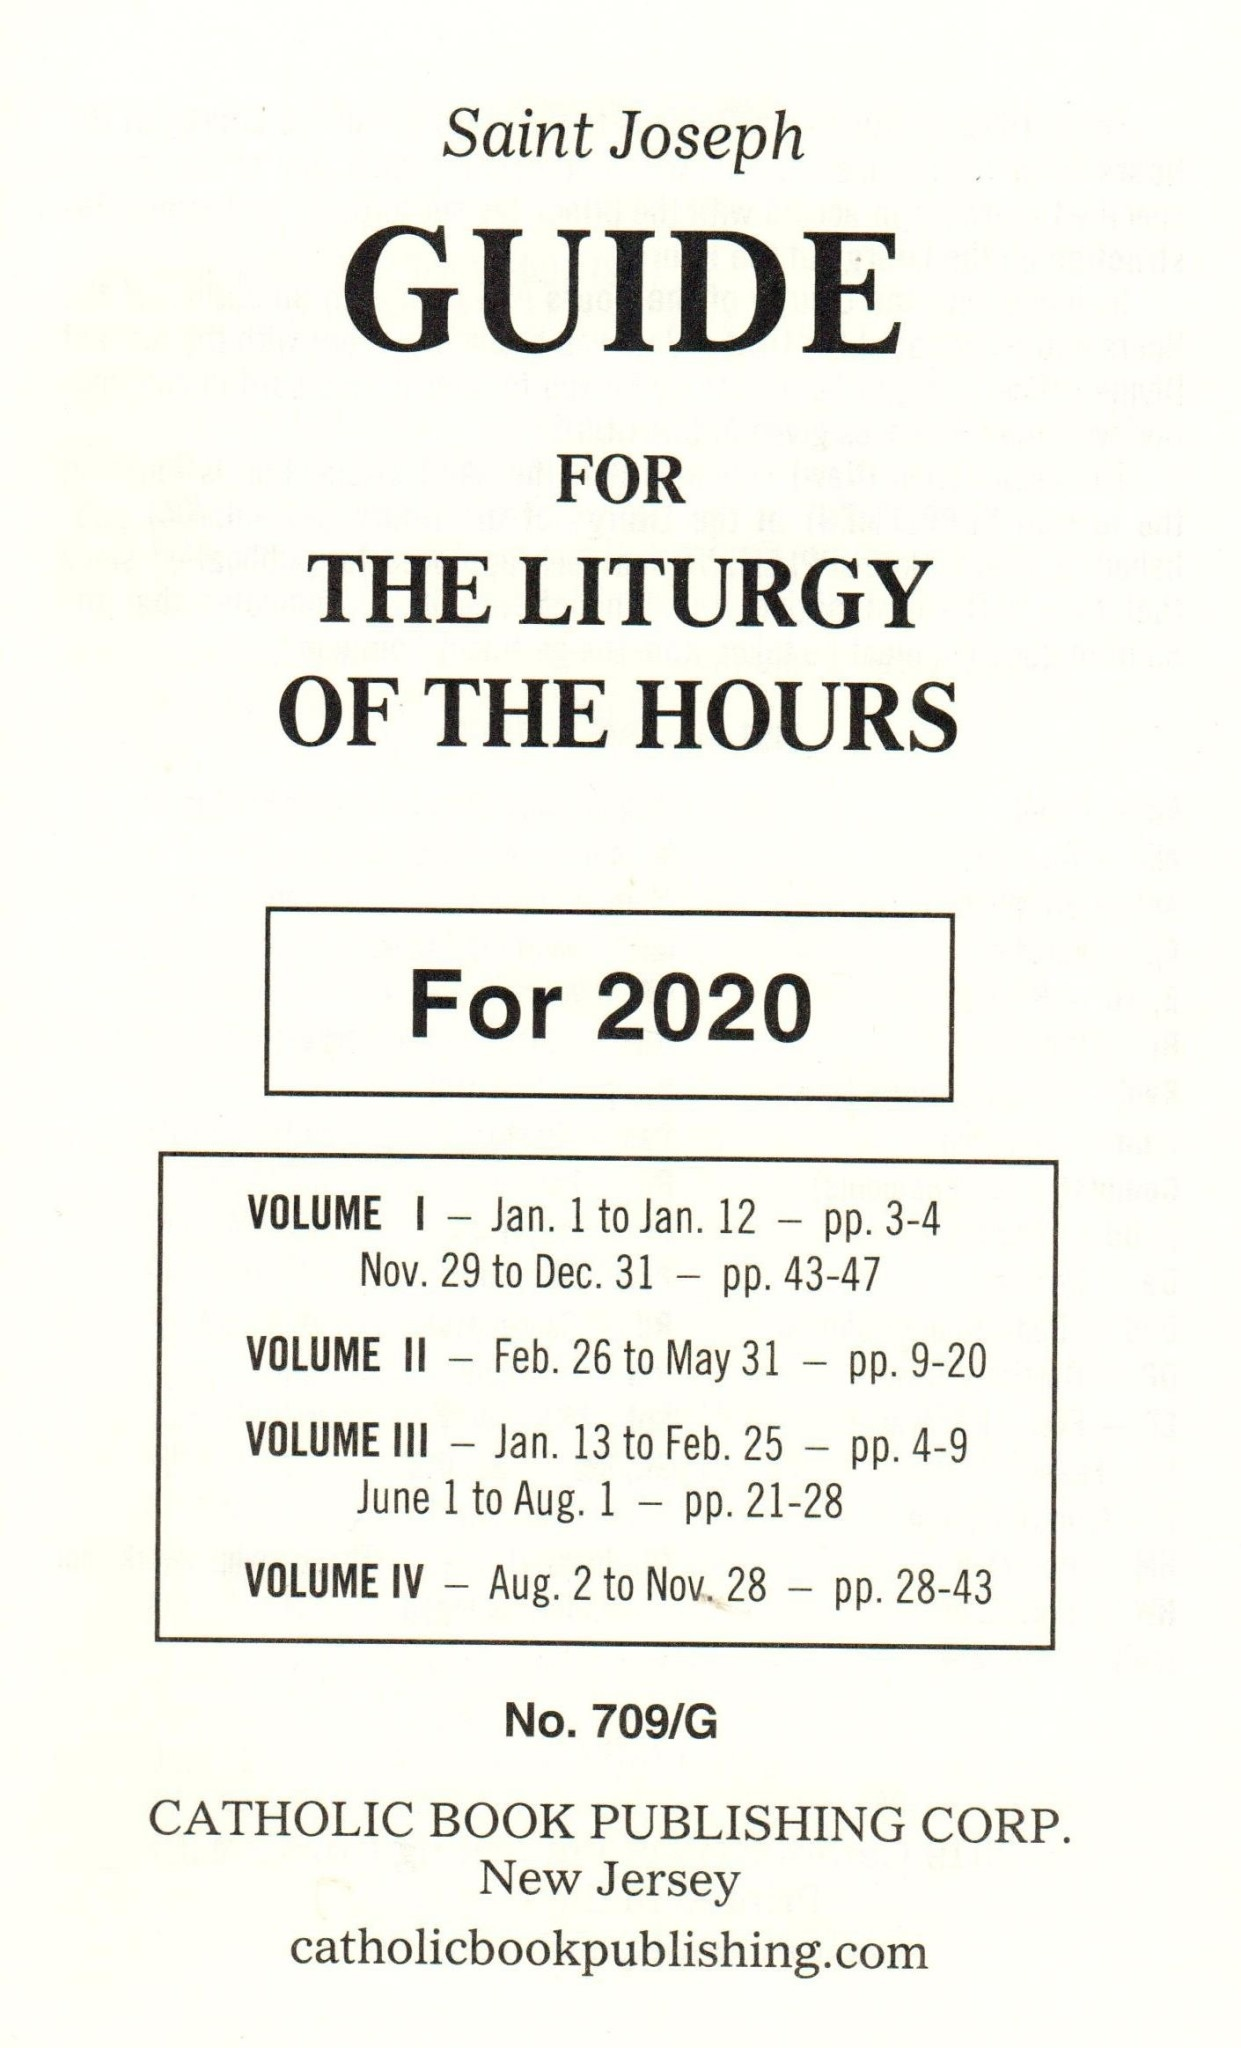 Saint Joseph Guide for The Liturgy of the Hours Large Print - 2020